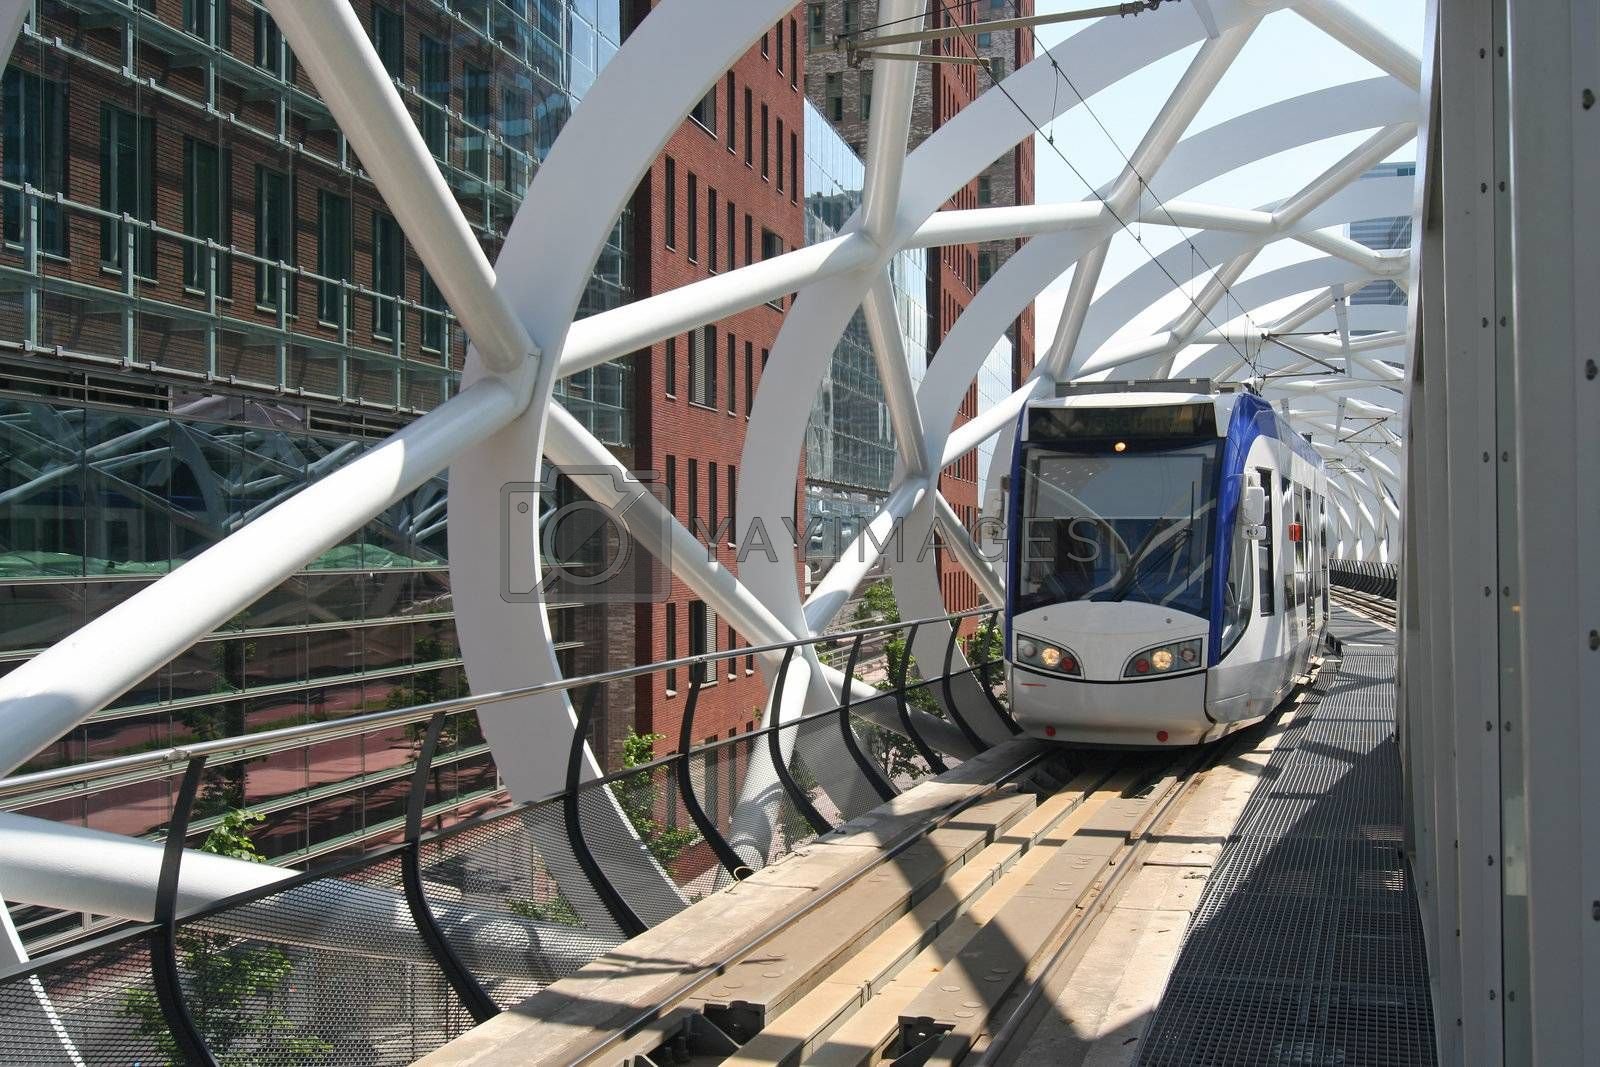 Futuristic elevated tram track of Randstad Rail in The Hague, Holland